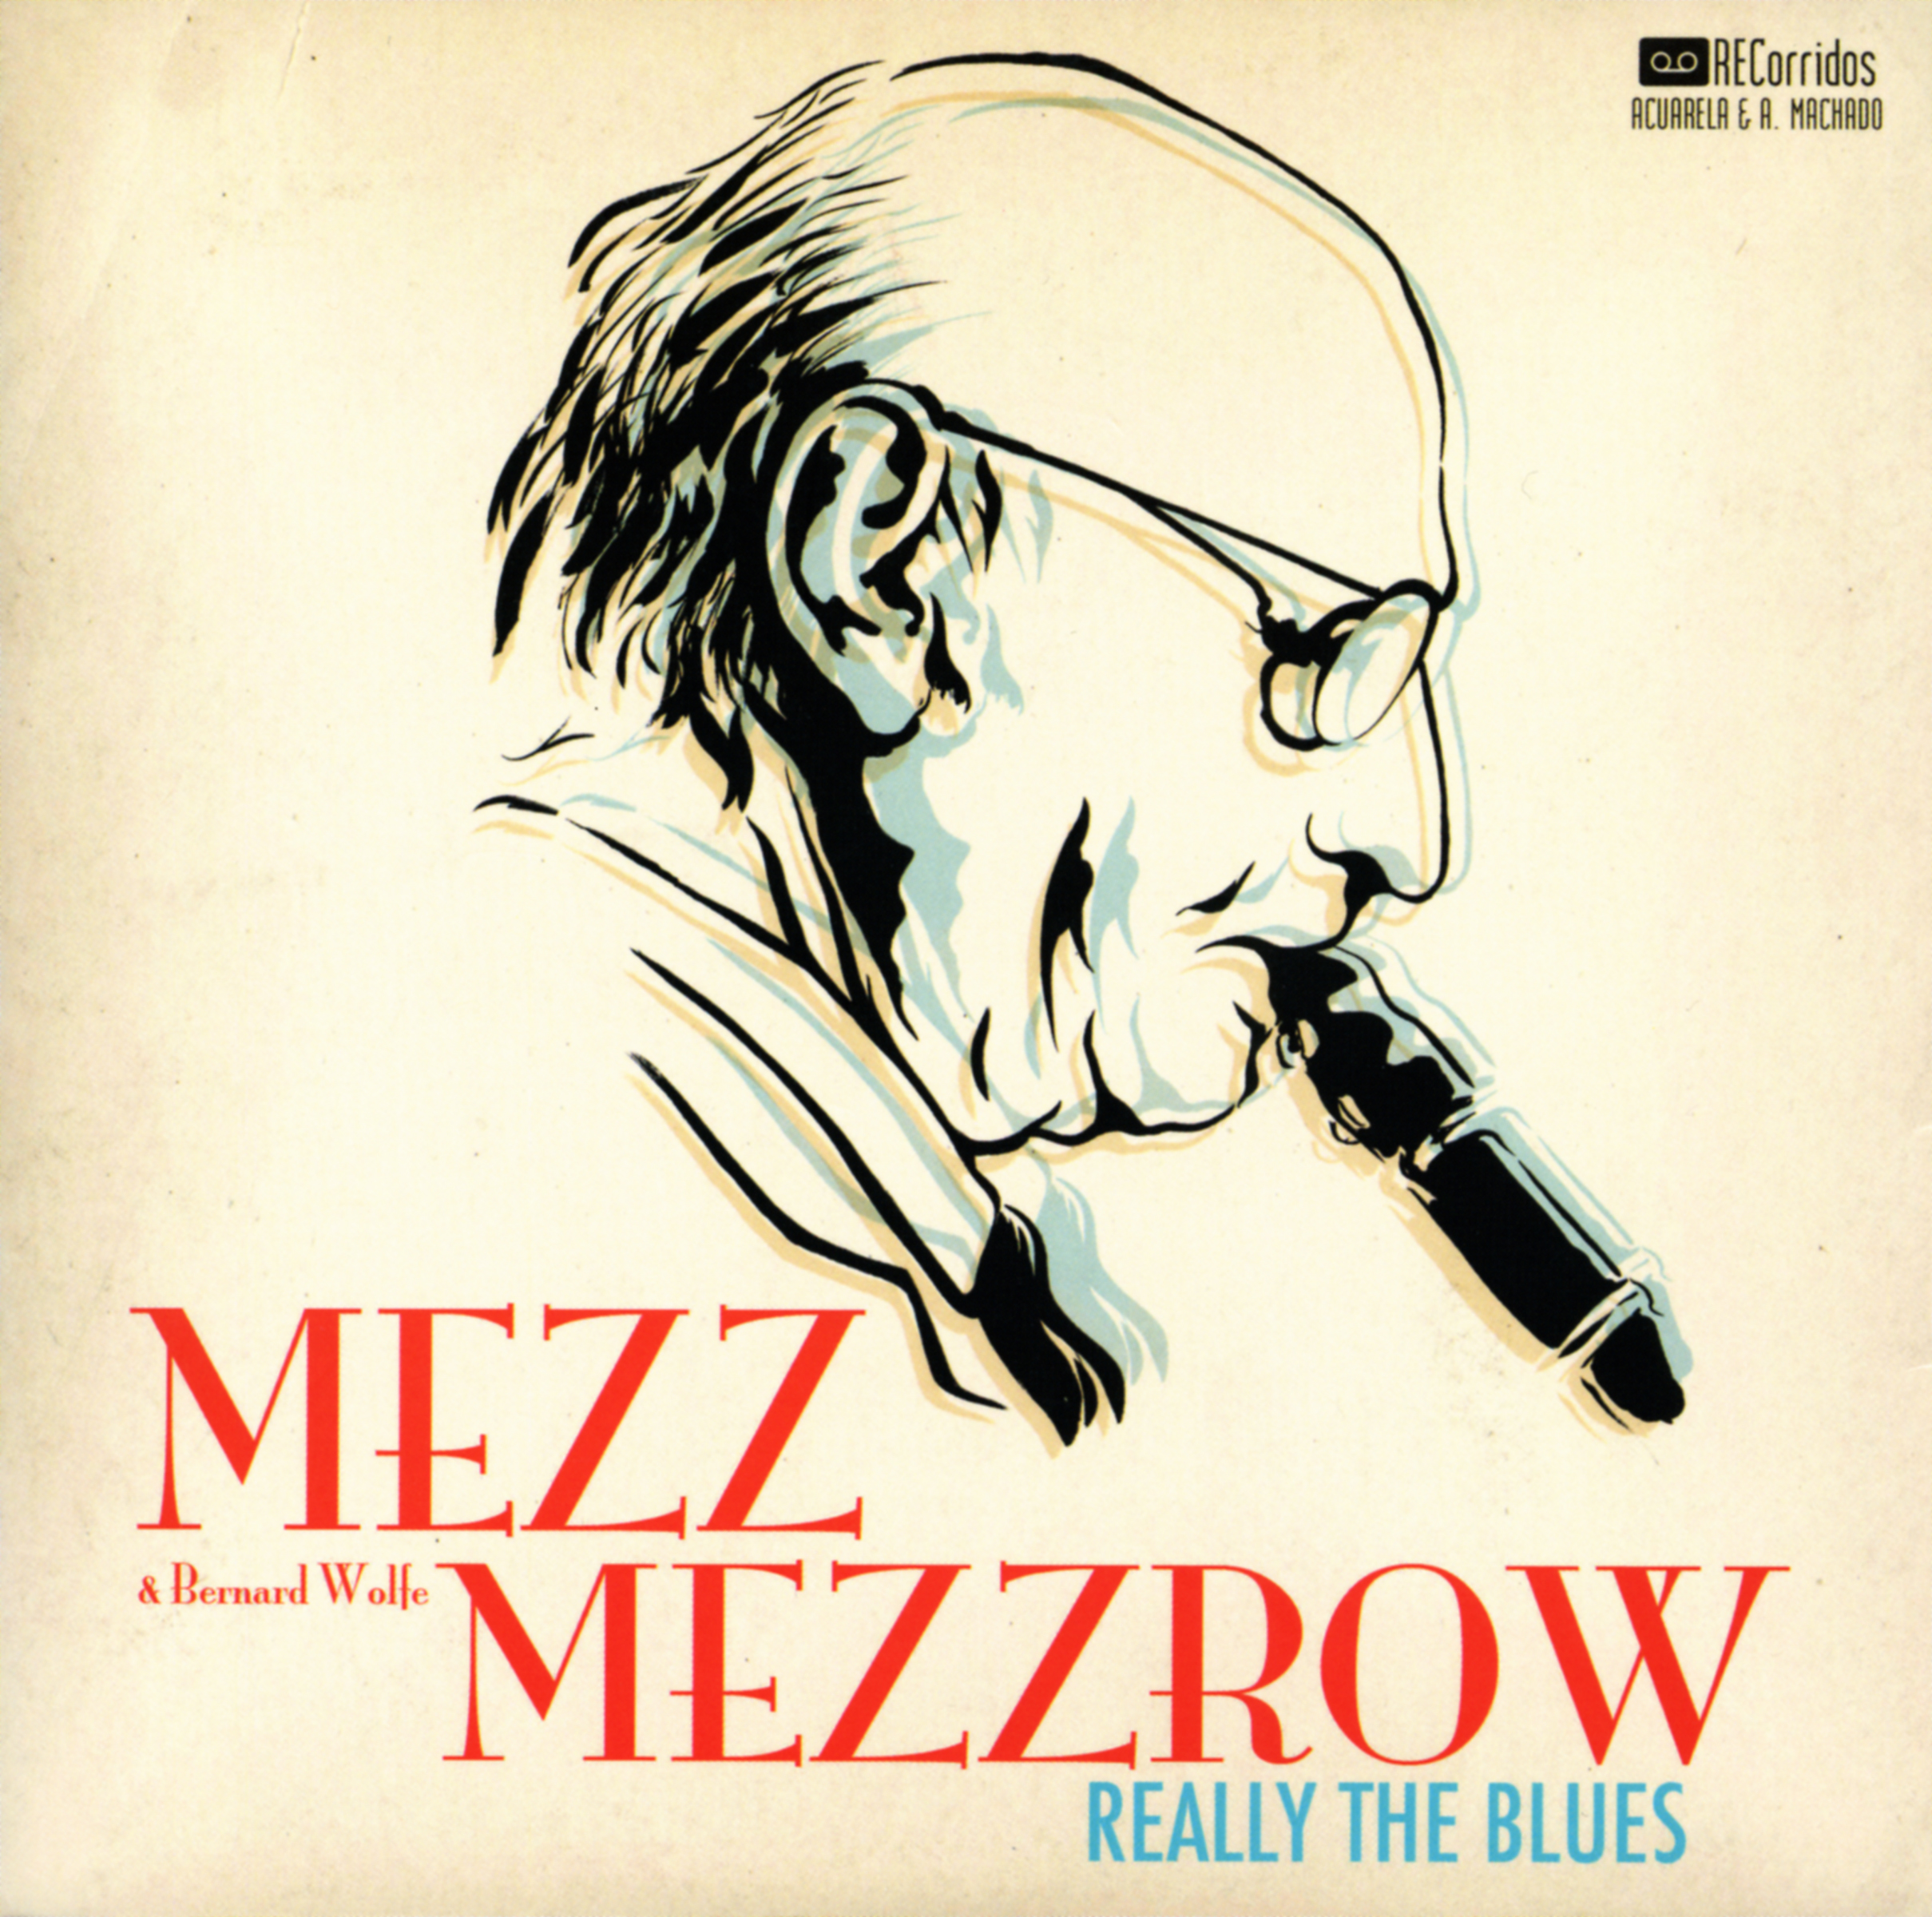 Mezz Mezzrow Really the blues